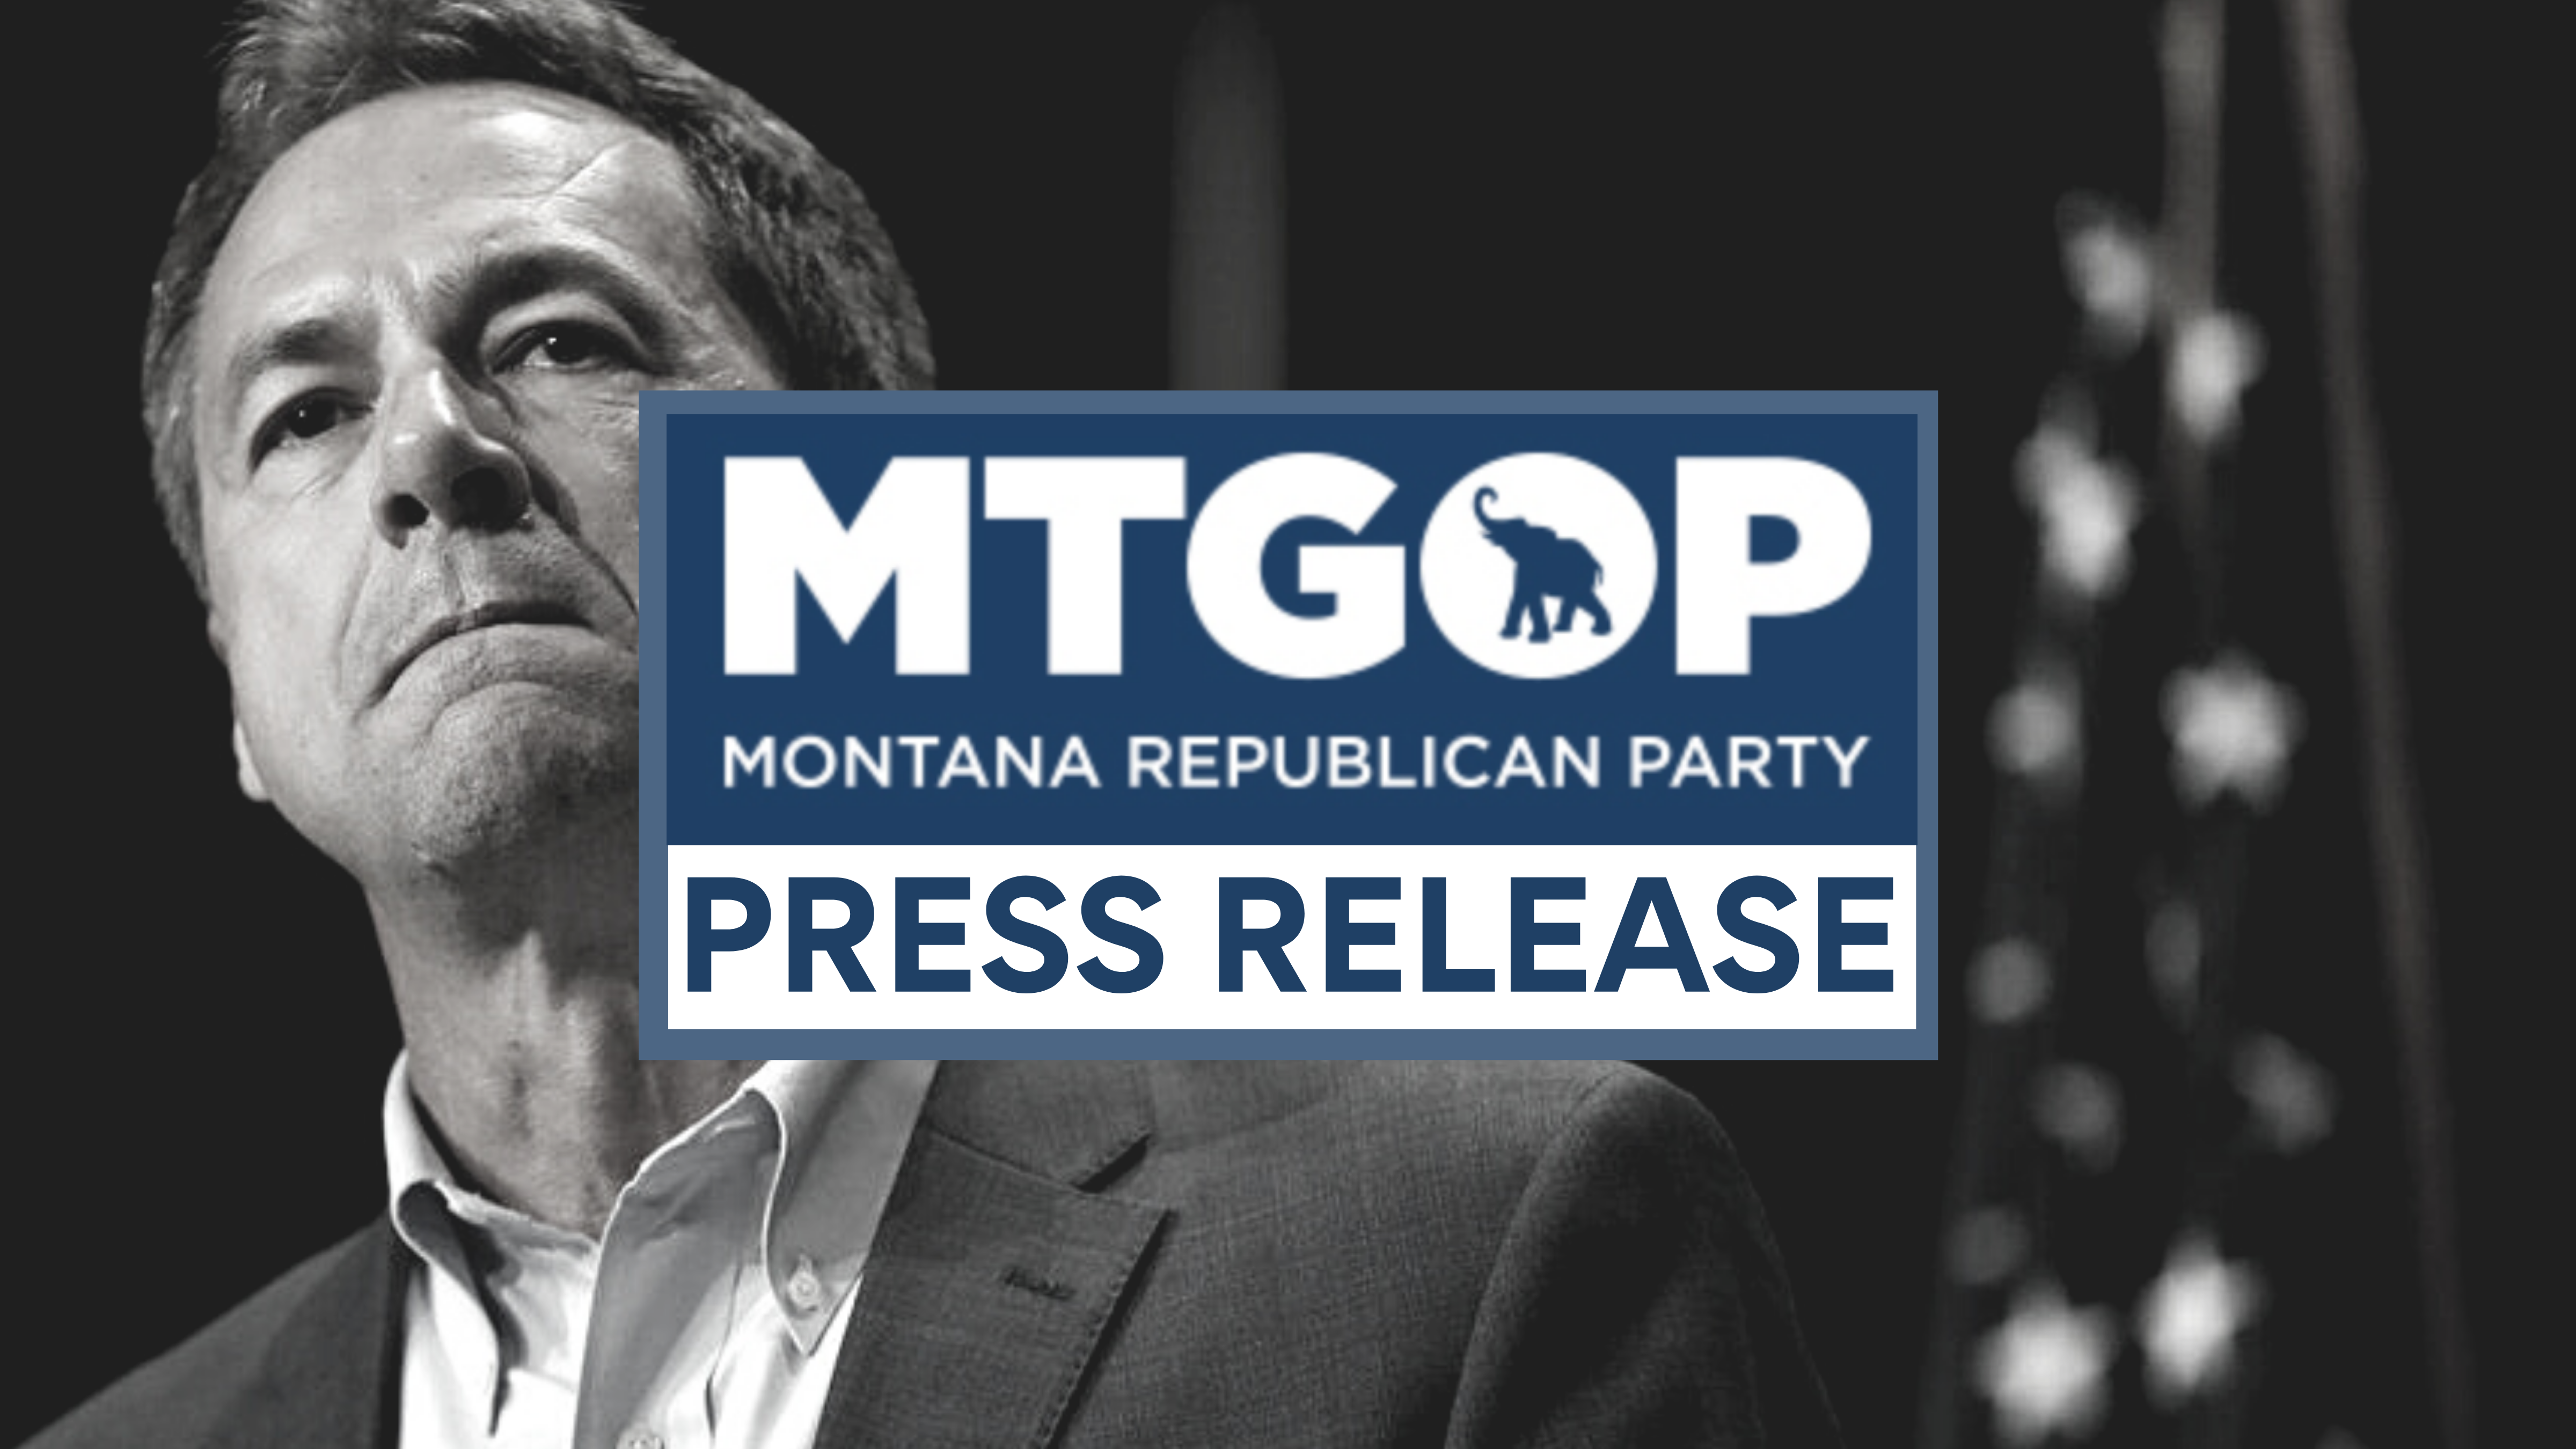 Governor Bullock Violates Hatch Act, Montana Ethics Laws in Ads